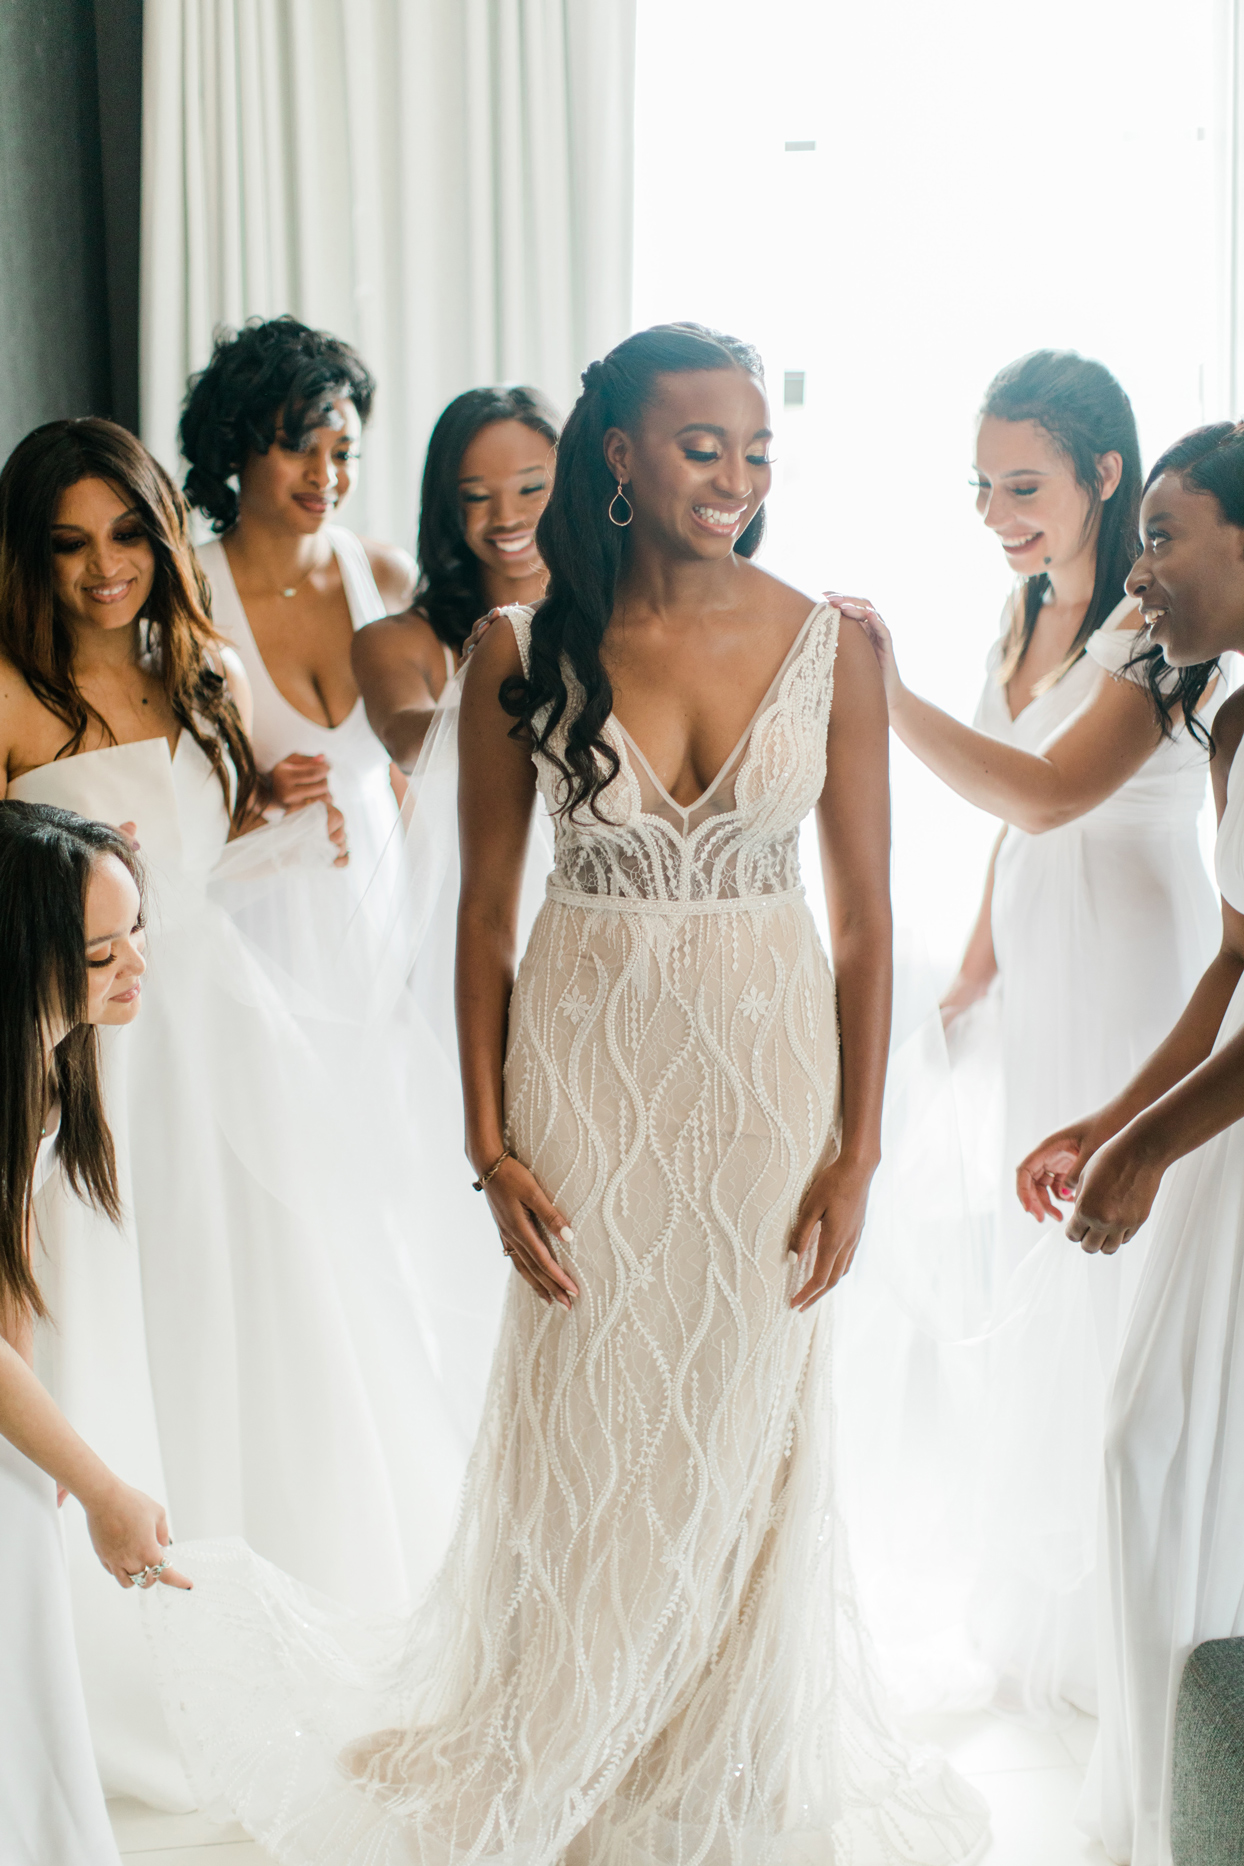 bride getting ready surrounded by bridesmaids wearing white